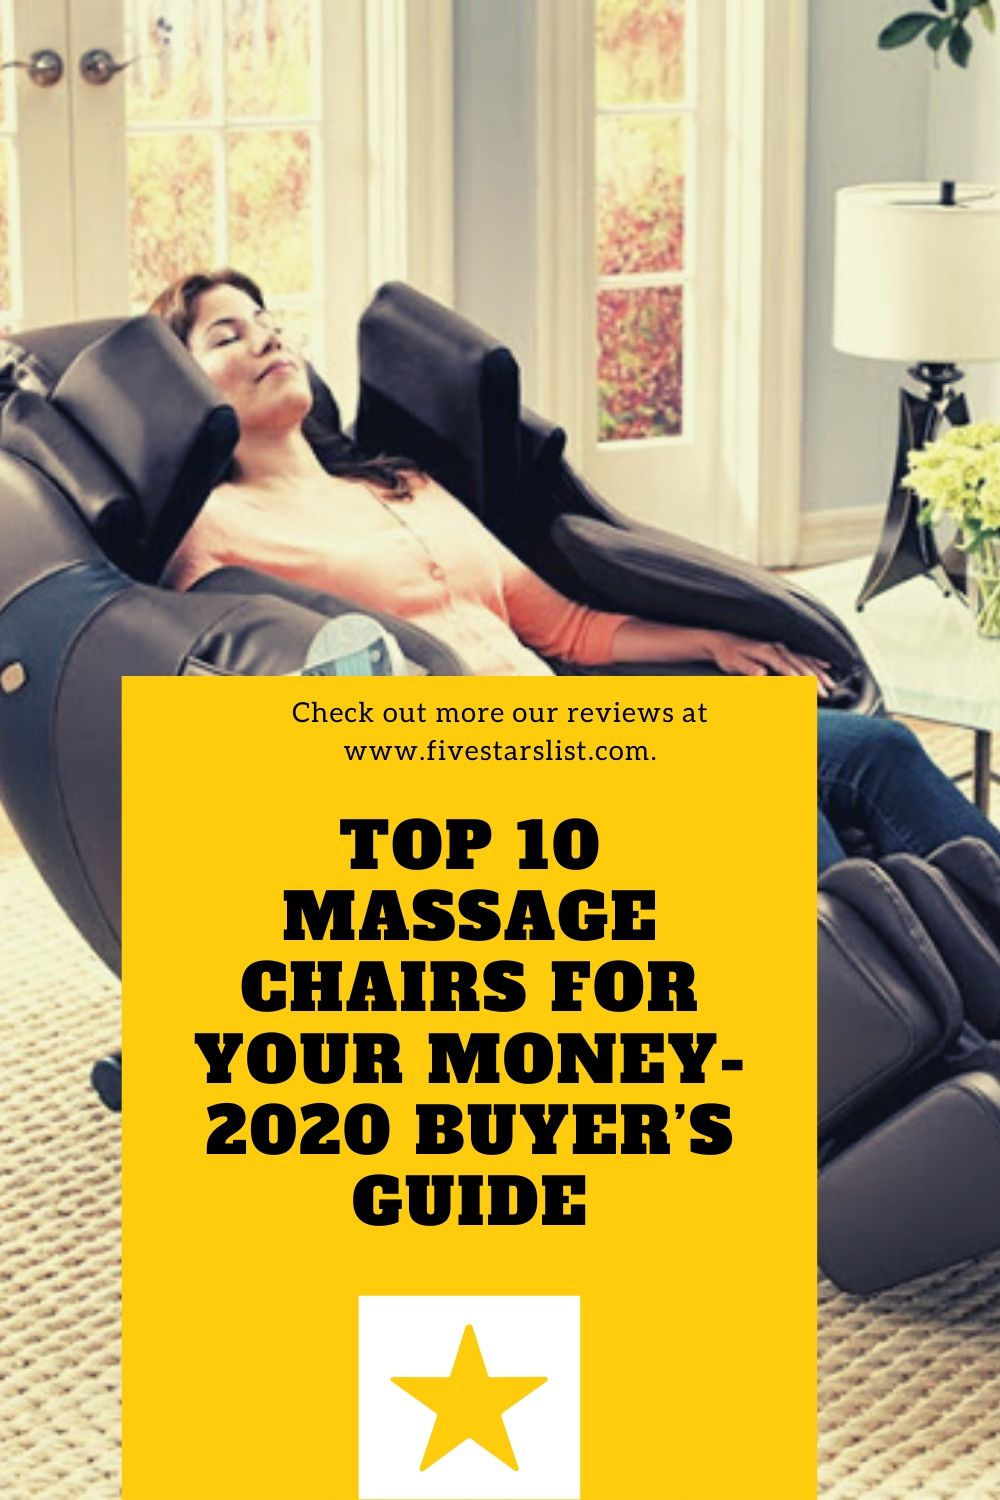 Top 10 Massage Chairs for Your Money- 2020 Buyer's Guide